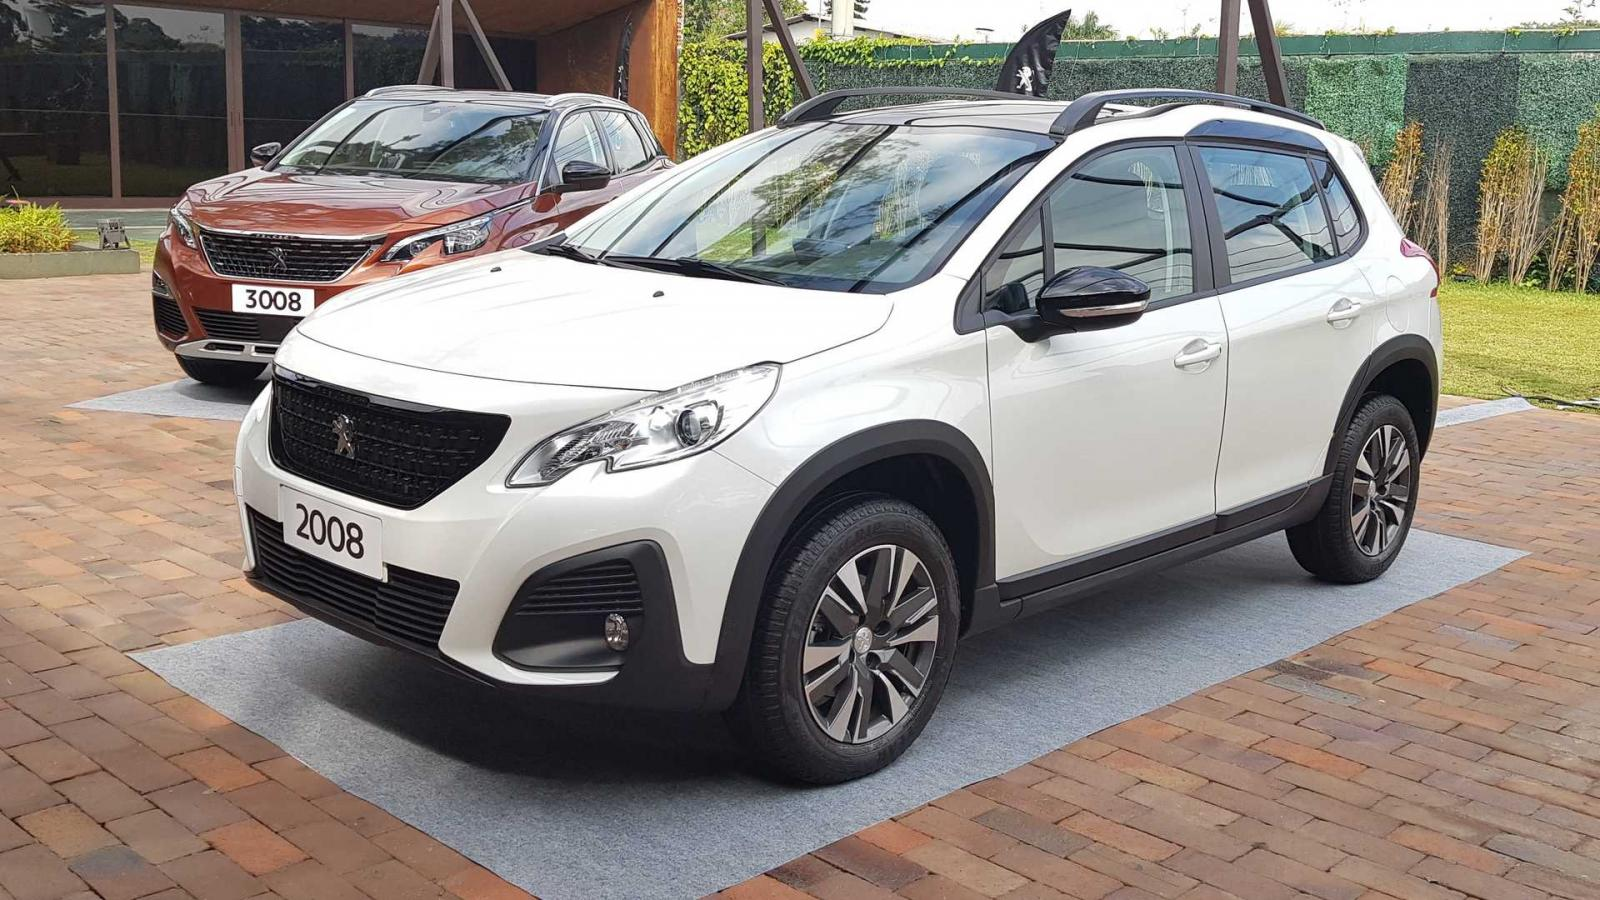 2020 Peugeot 2008 Suv Released With Full Specs Price Check It